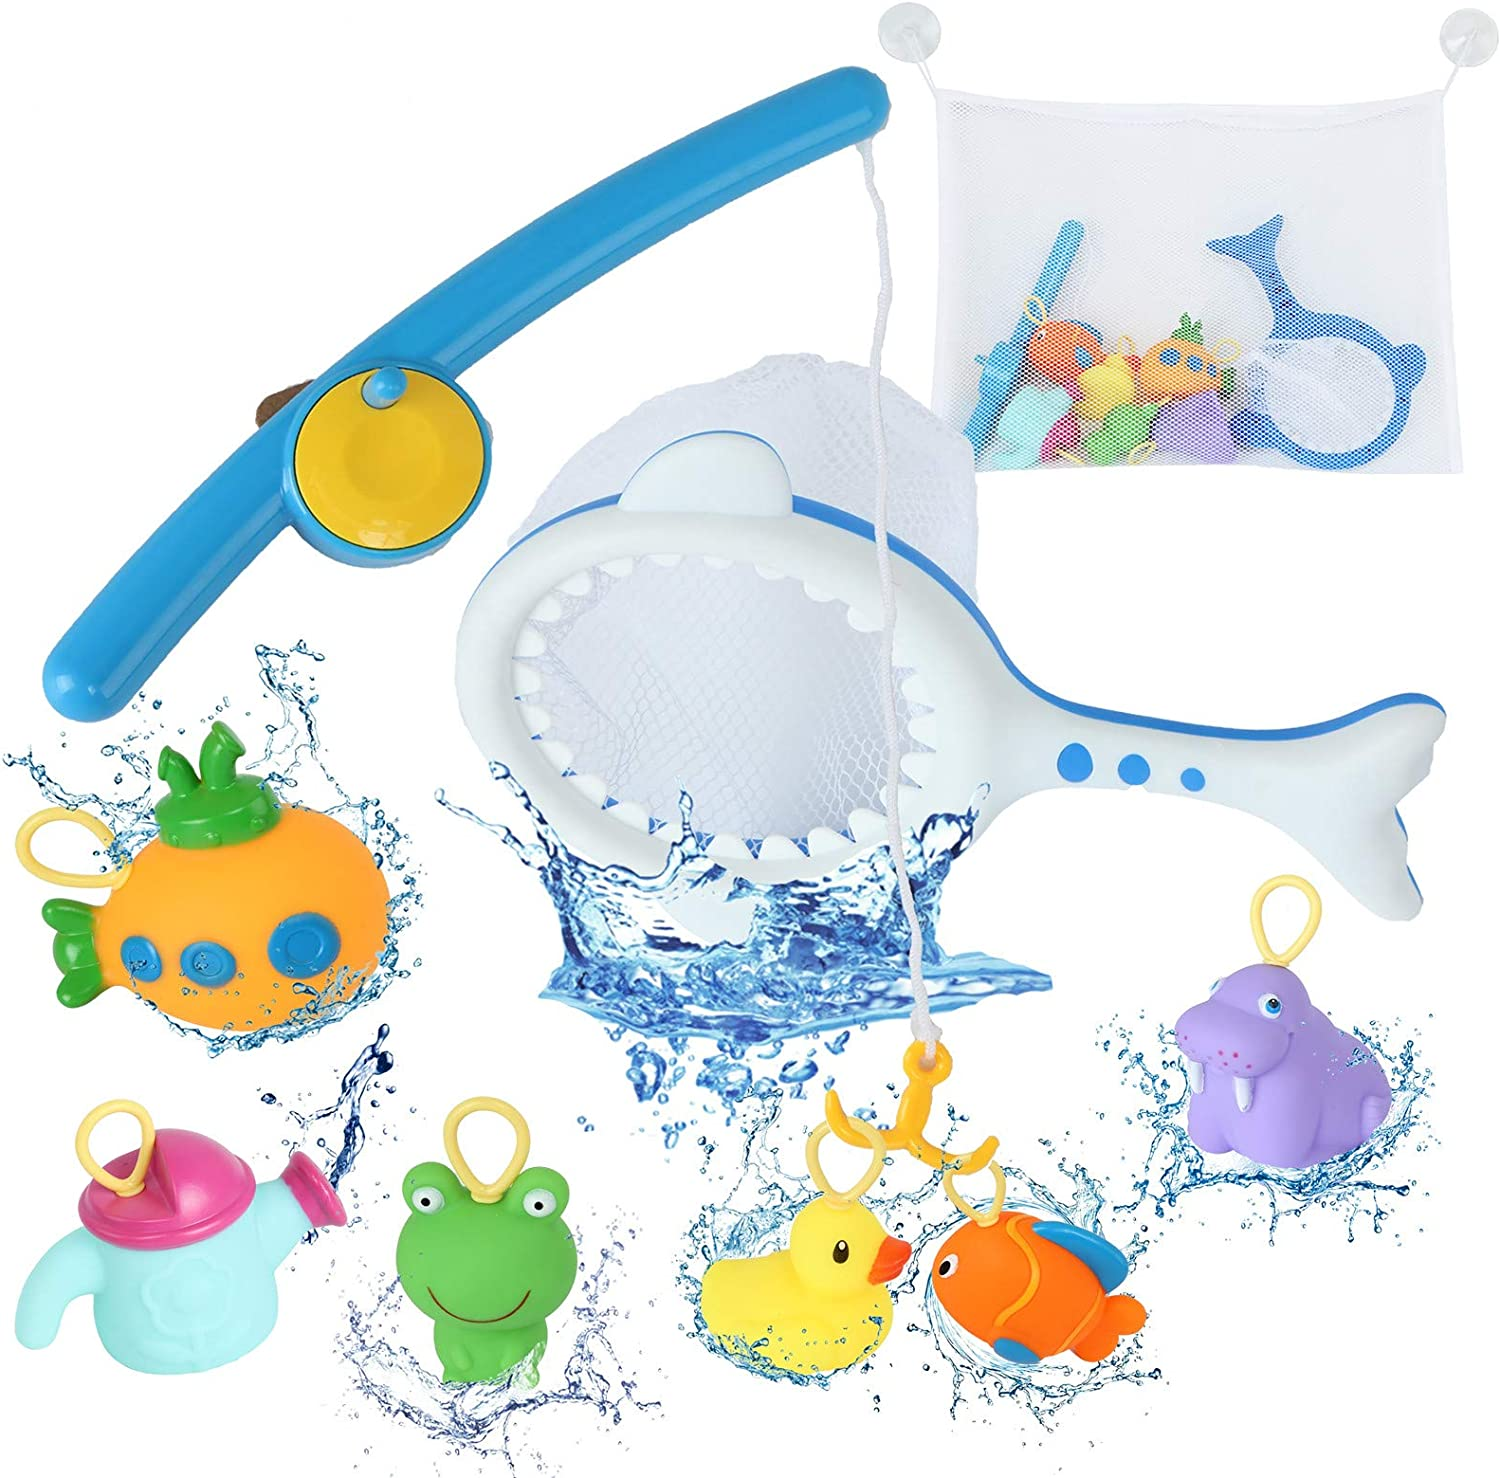 Baby Swimming Pool Toy Squirt Water Toy for Bathtub Pool with Fishing Net /& Storage Bag Erlsig Fishing Bath Toy